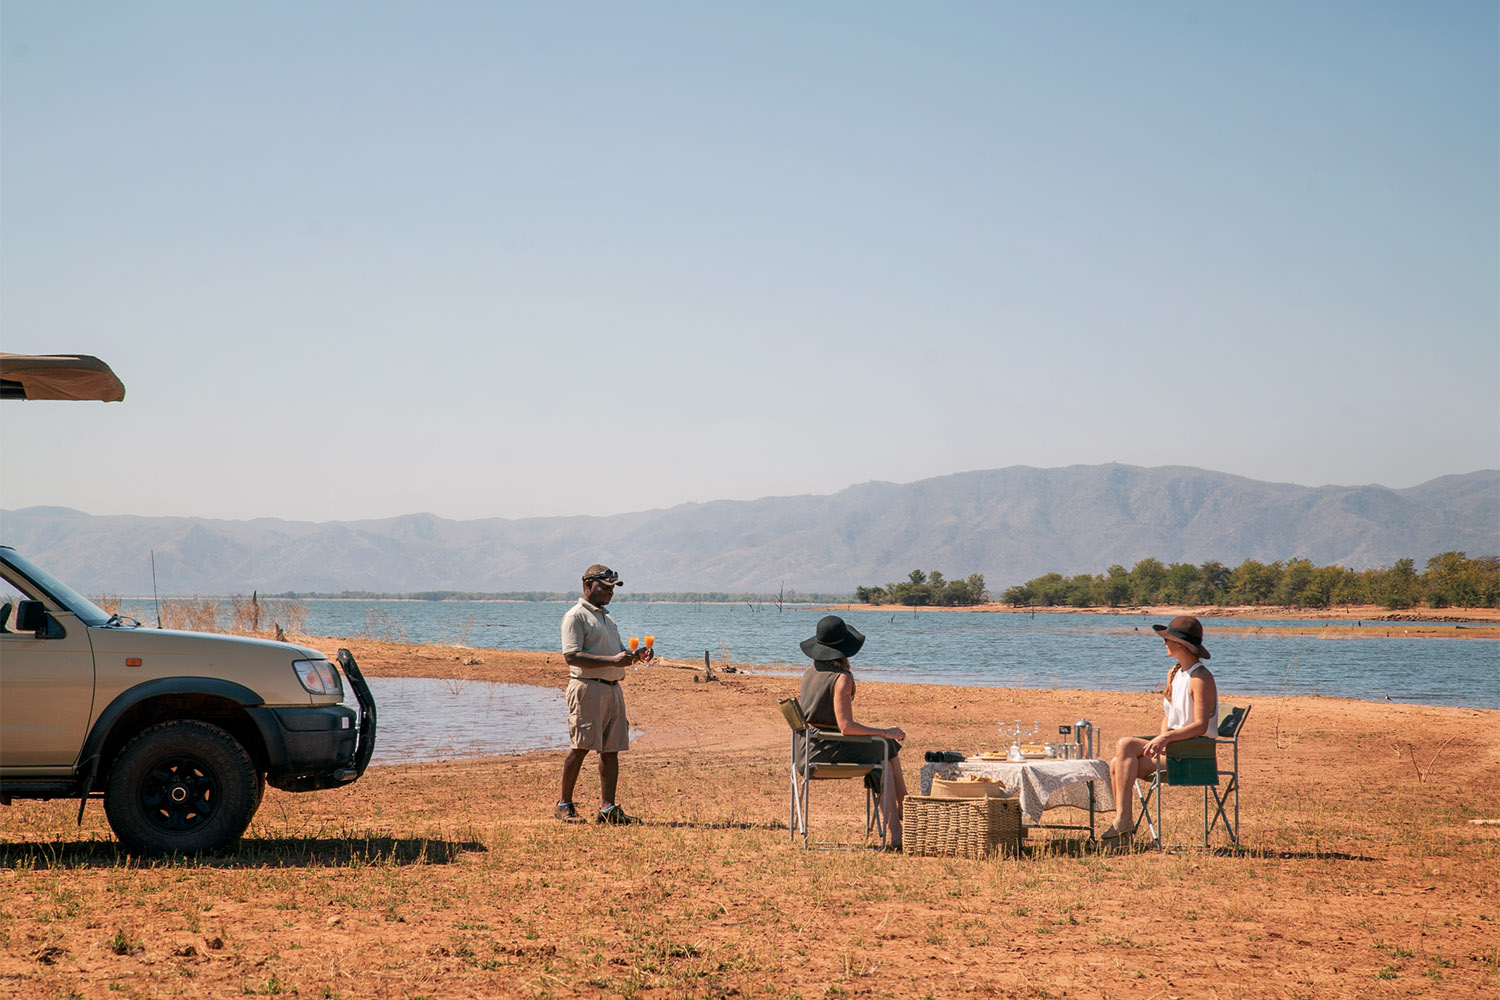 changa safari camp lake-kariba-zimbabwe-zambia-in-style-delicious-cuisine-tea-stop